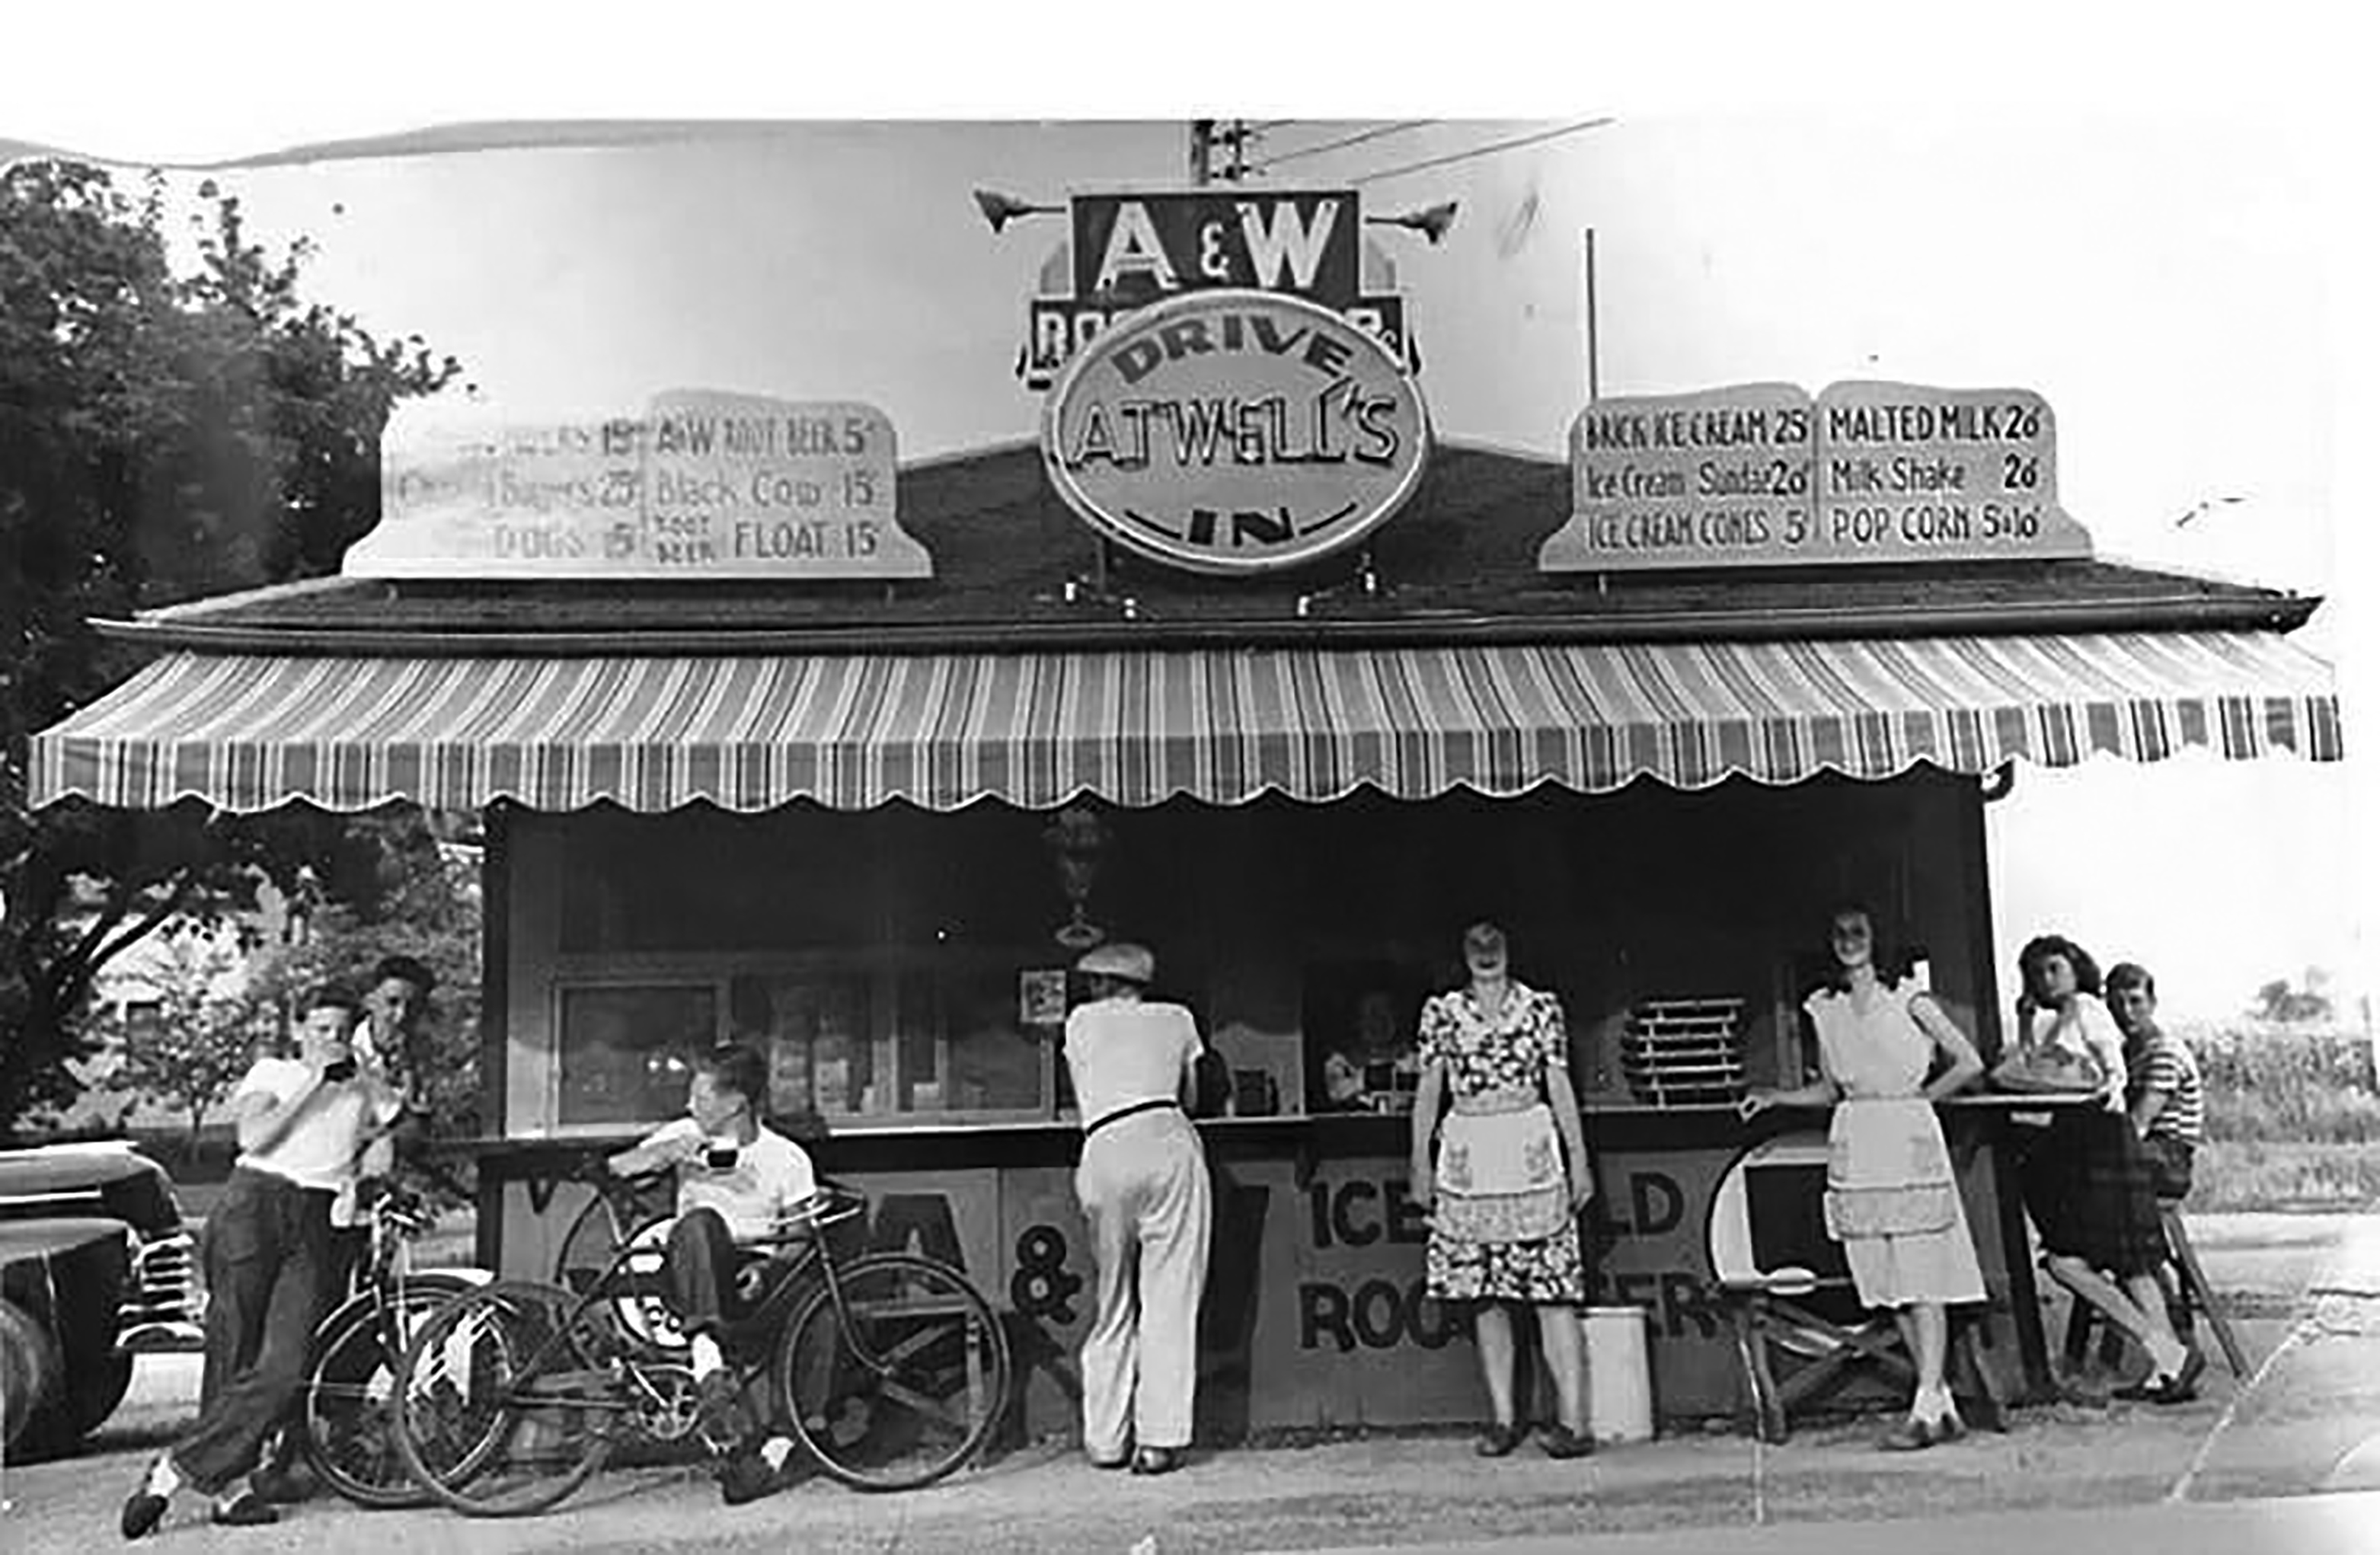 Early A&W Drive-In, Fond du Lac, WI